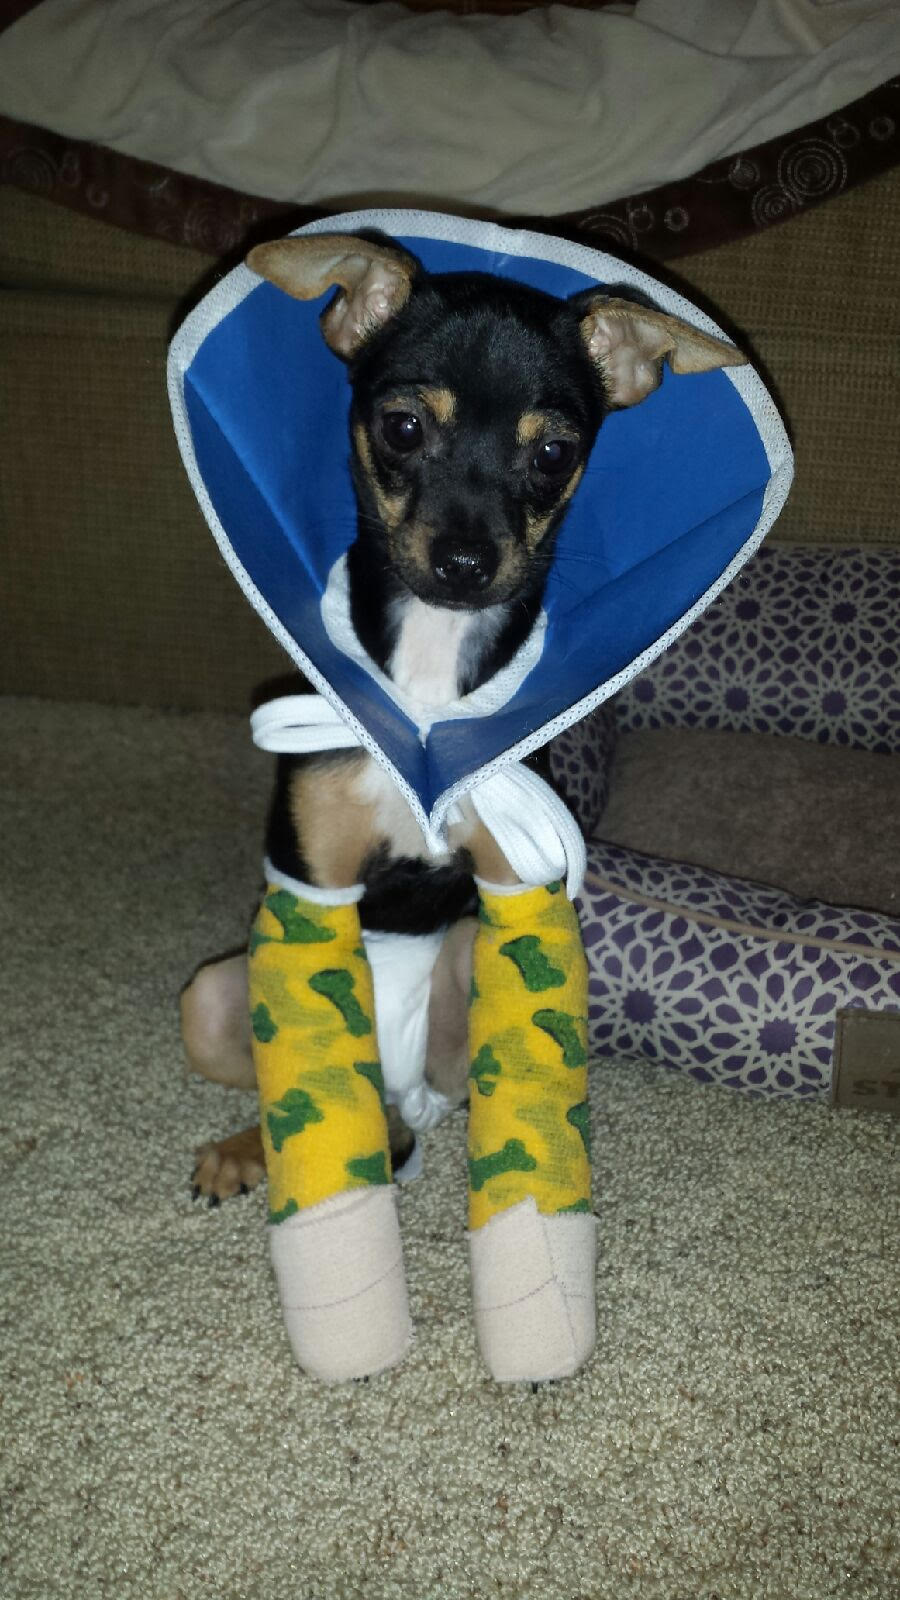 Bearito in his first splint/bandage wrap.